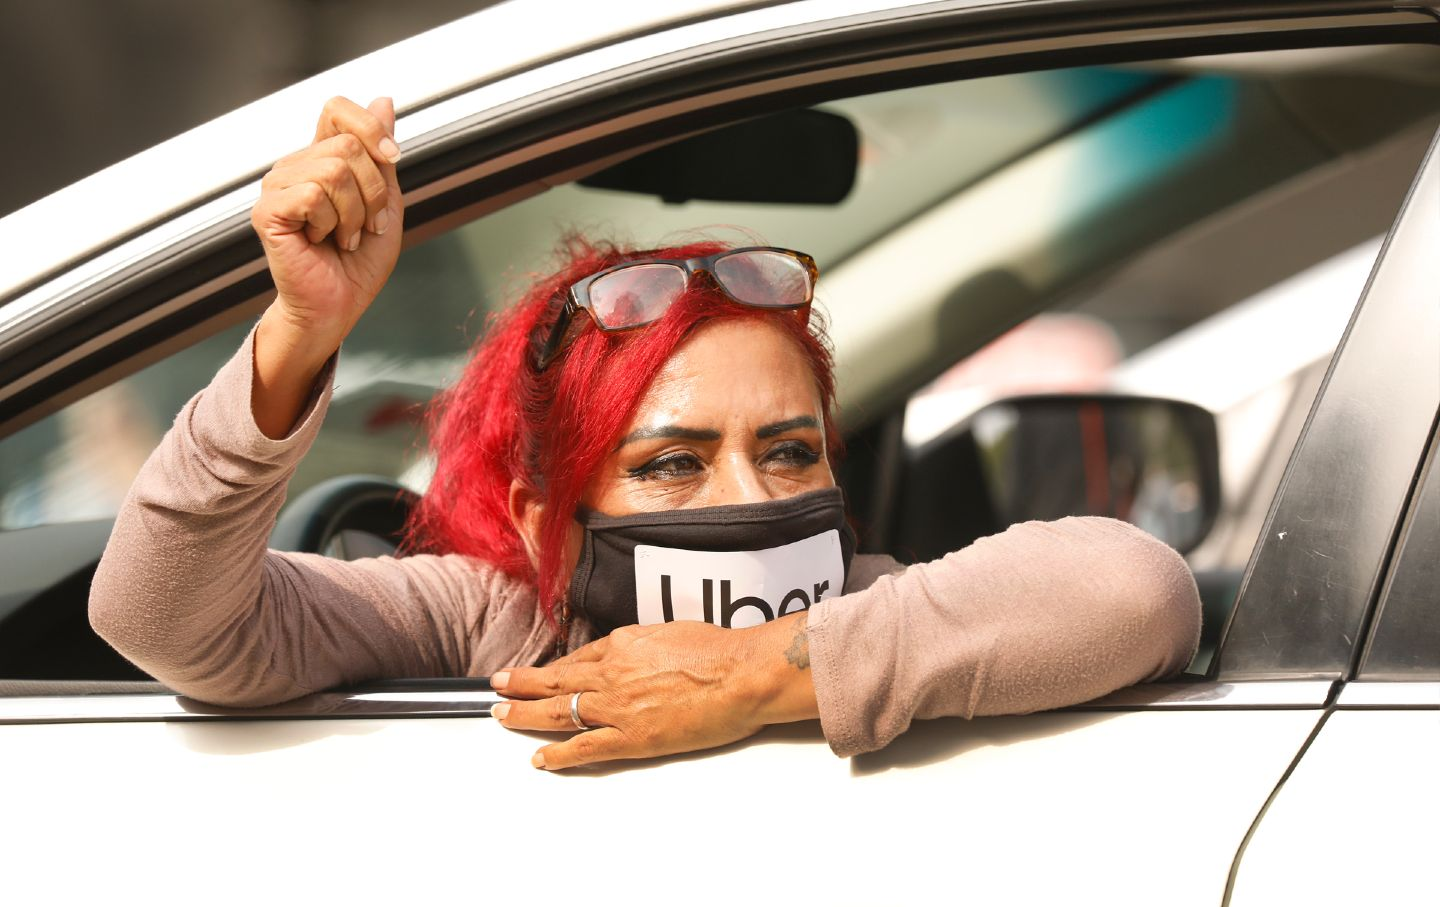 A woman with pink hair wearing a mask that says